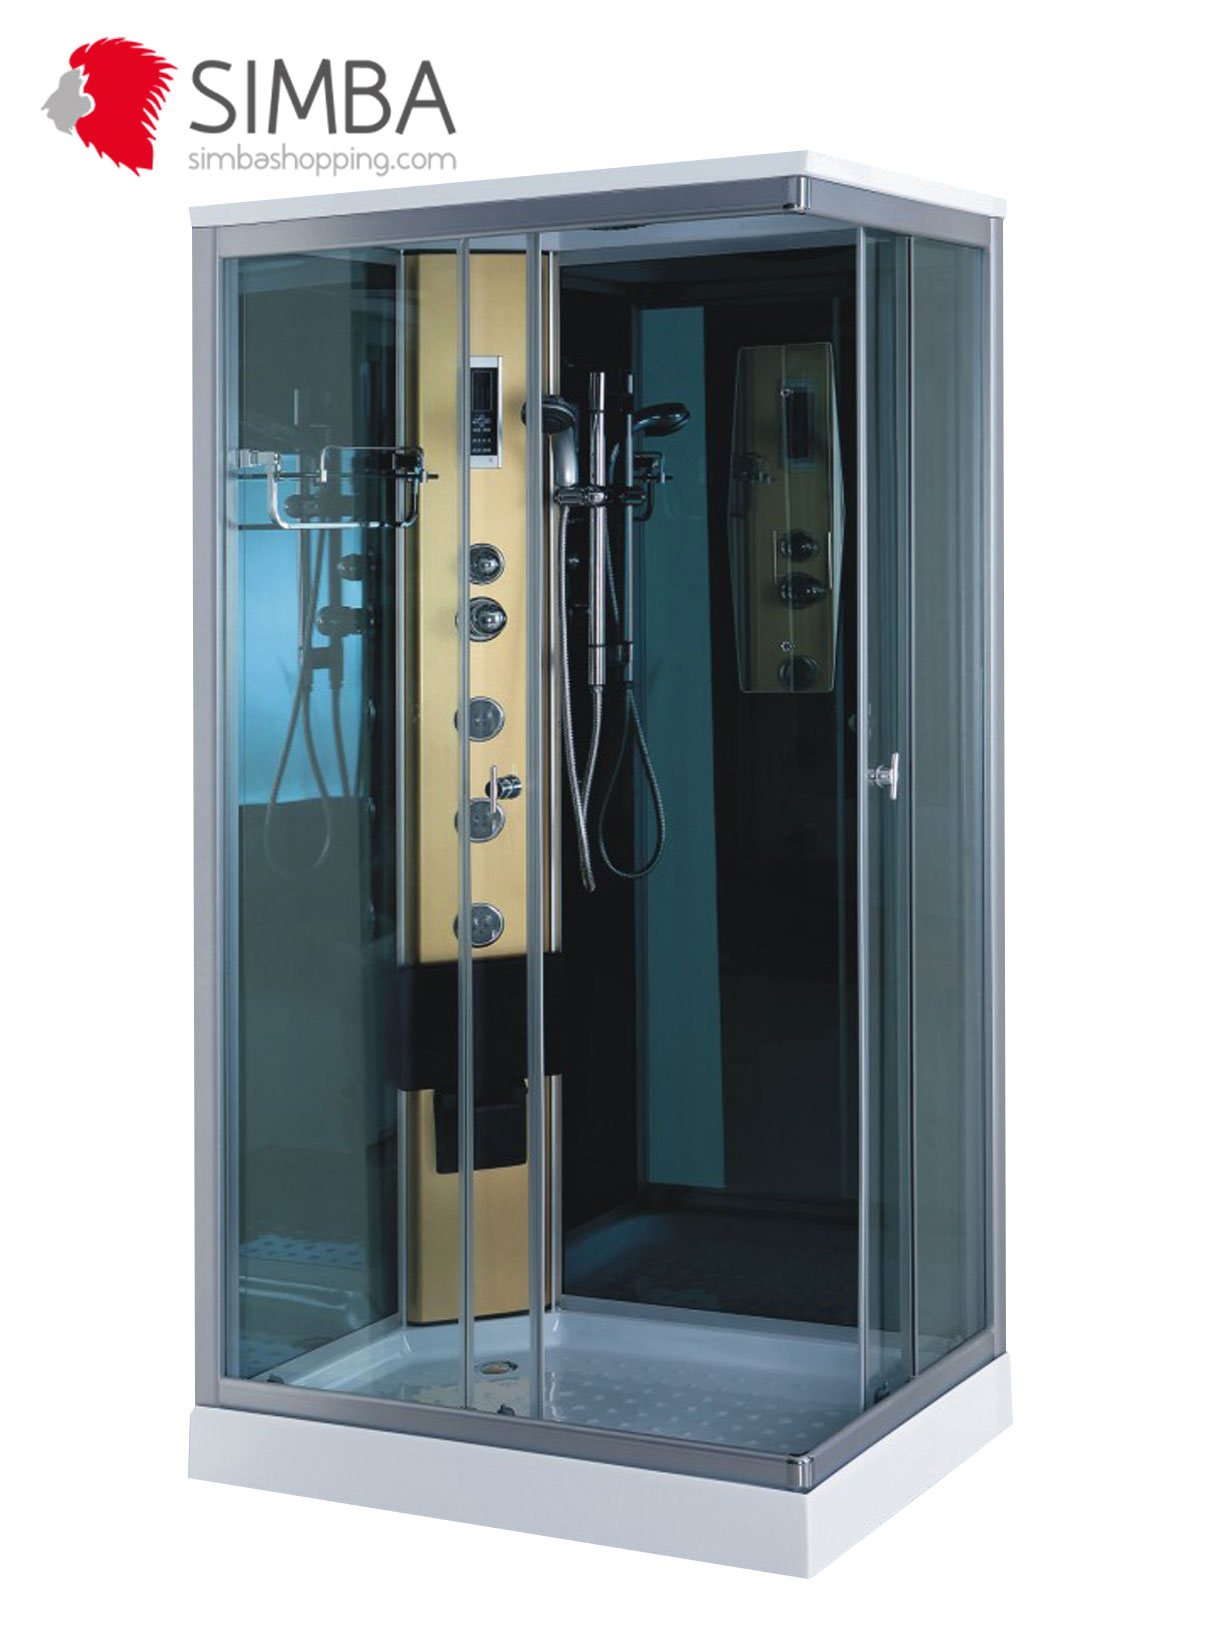 cabine de douche hydromassante spa bain massage verre 5 mm portofino 100 x 70 cm ebay. Black Bedroom Furniture Sets. Home Design Ideas